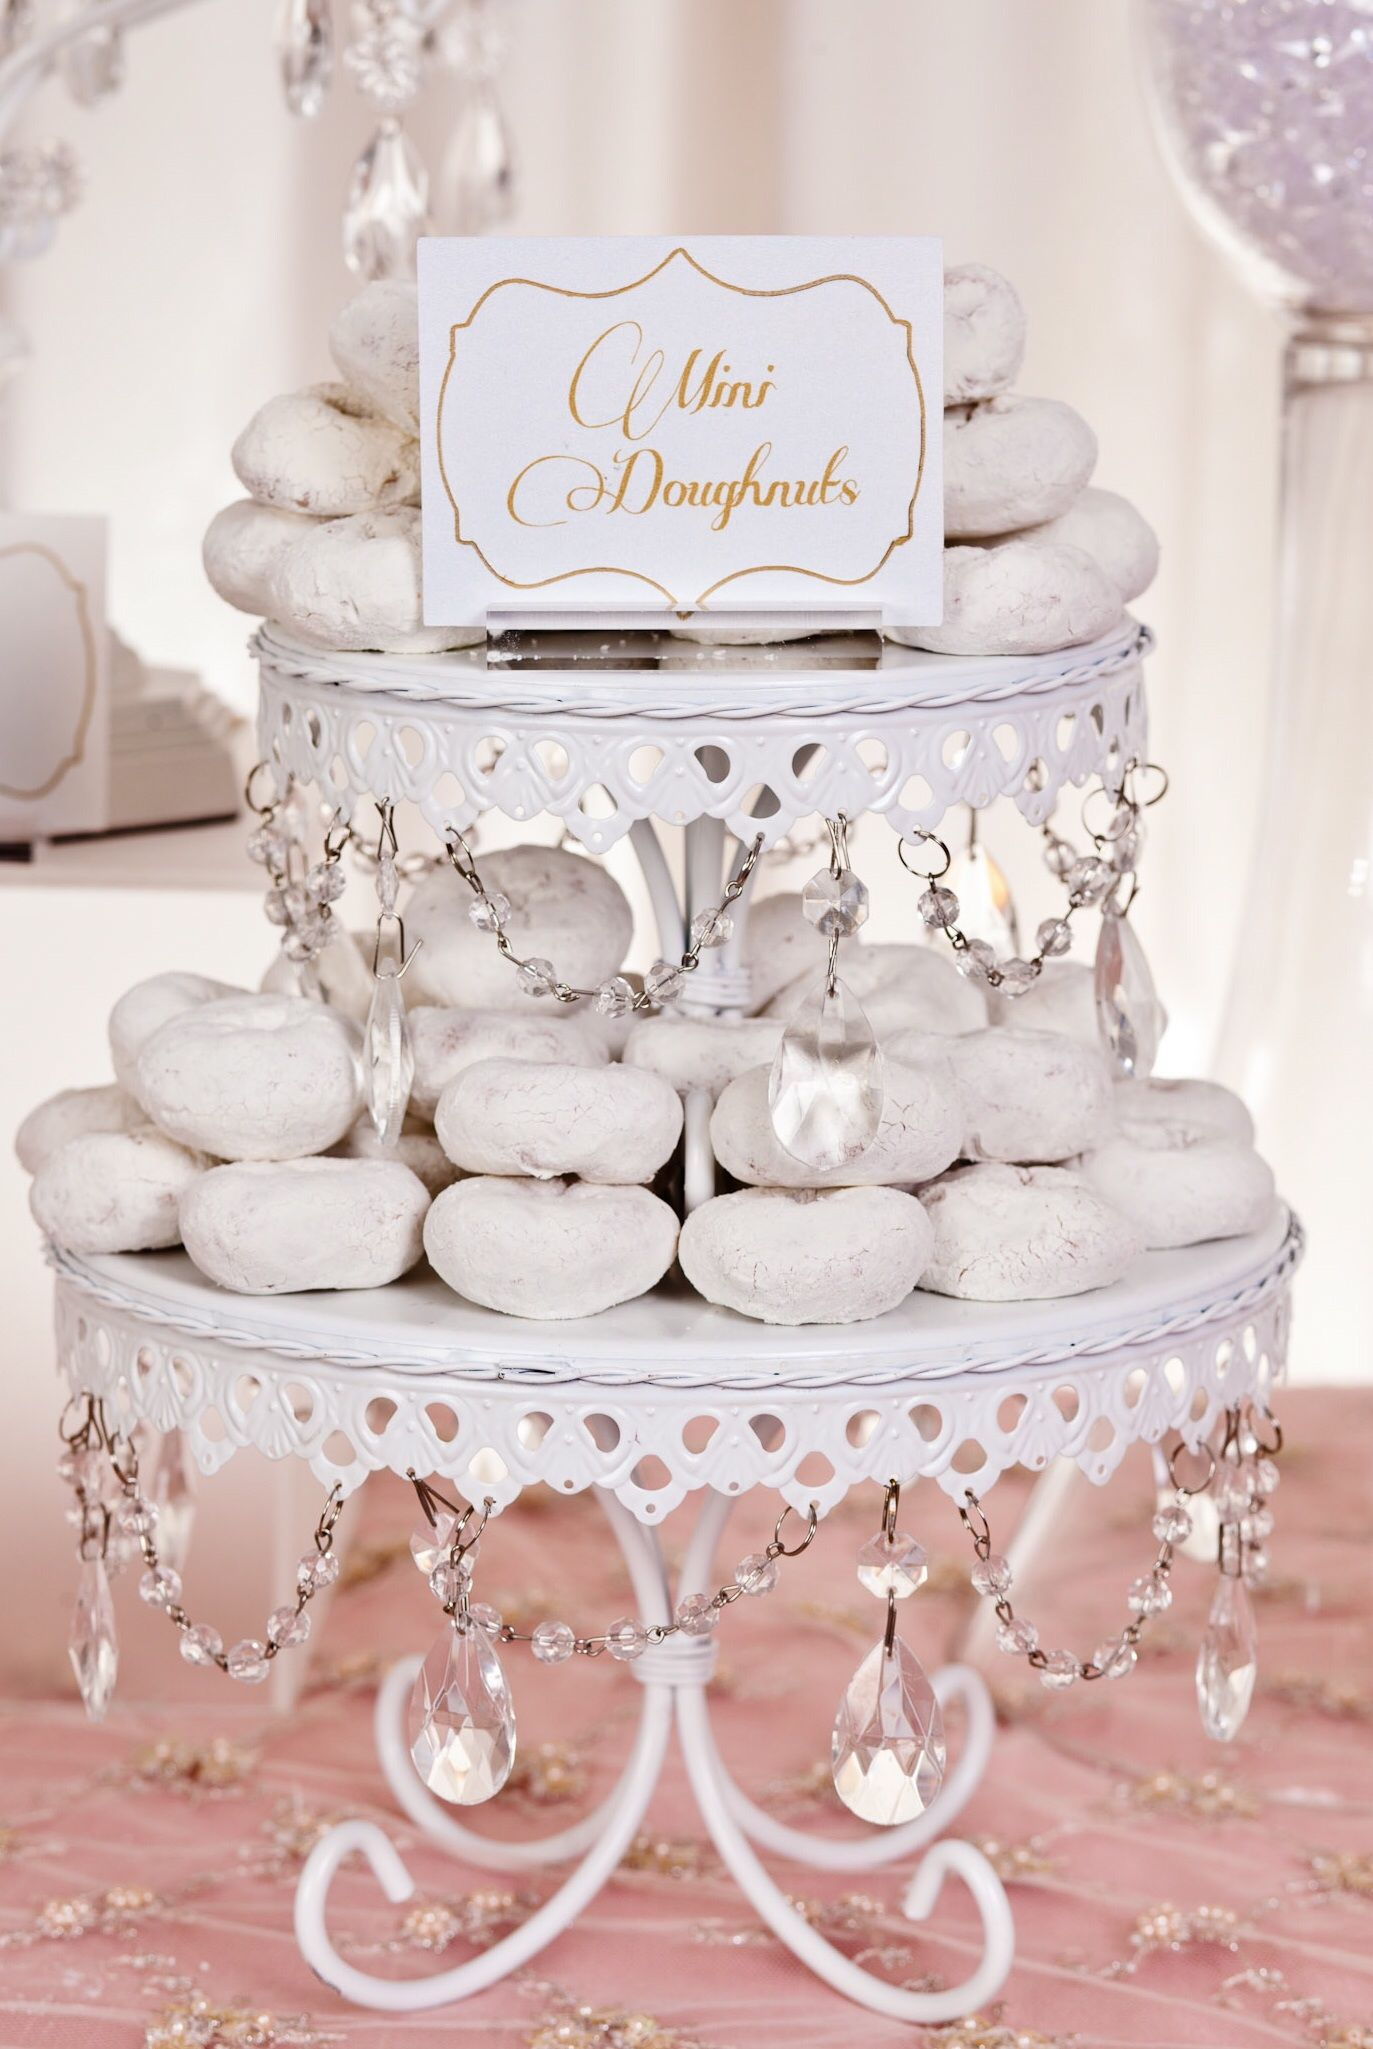 Stacked Bling cake stands look yummy with mini donuts! By KCee\'s ...